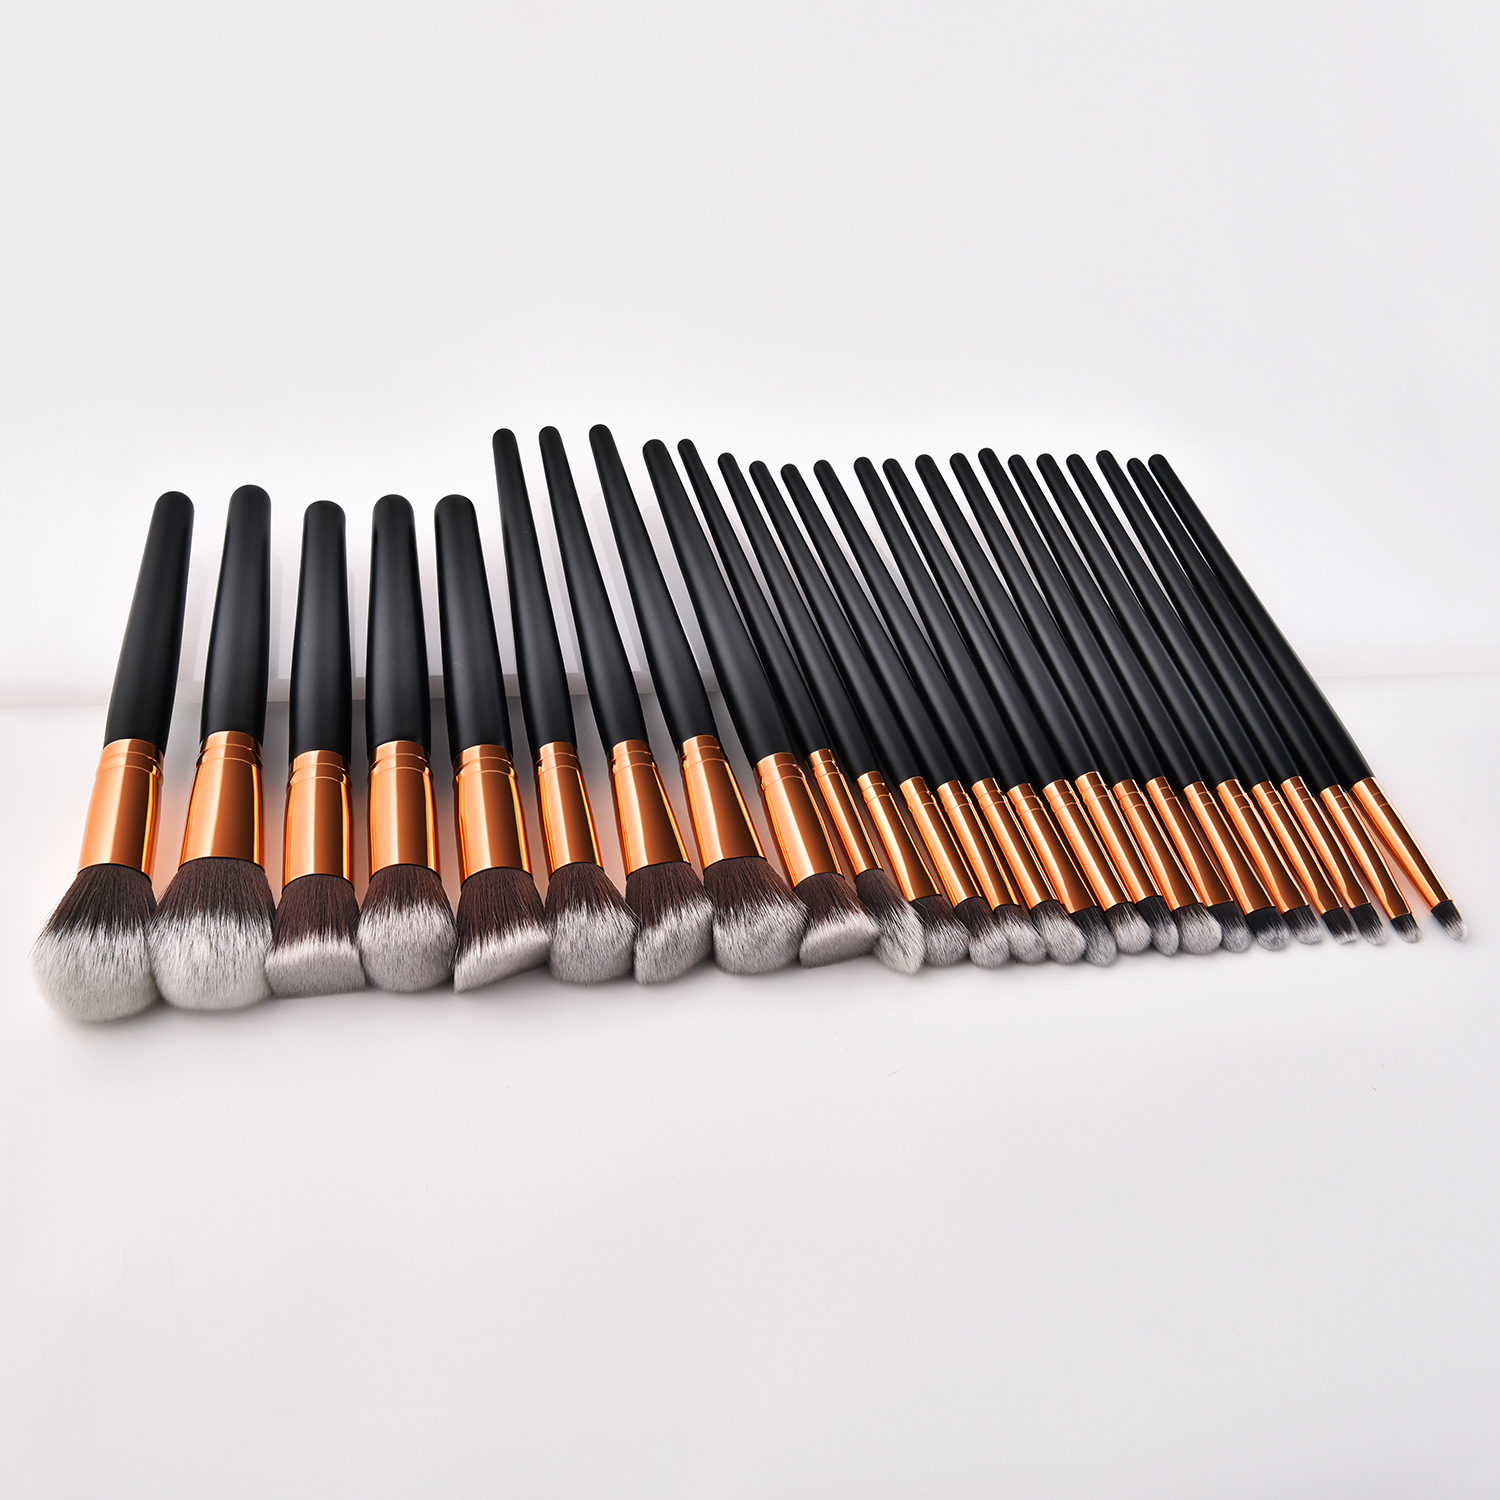 2019 Fashionable 25pcs Professional Cosmetics Makeup Brushes Set with Black Wooden Handle Gold Ferruel